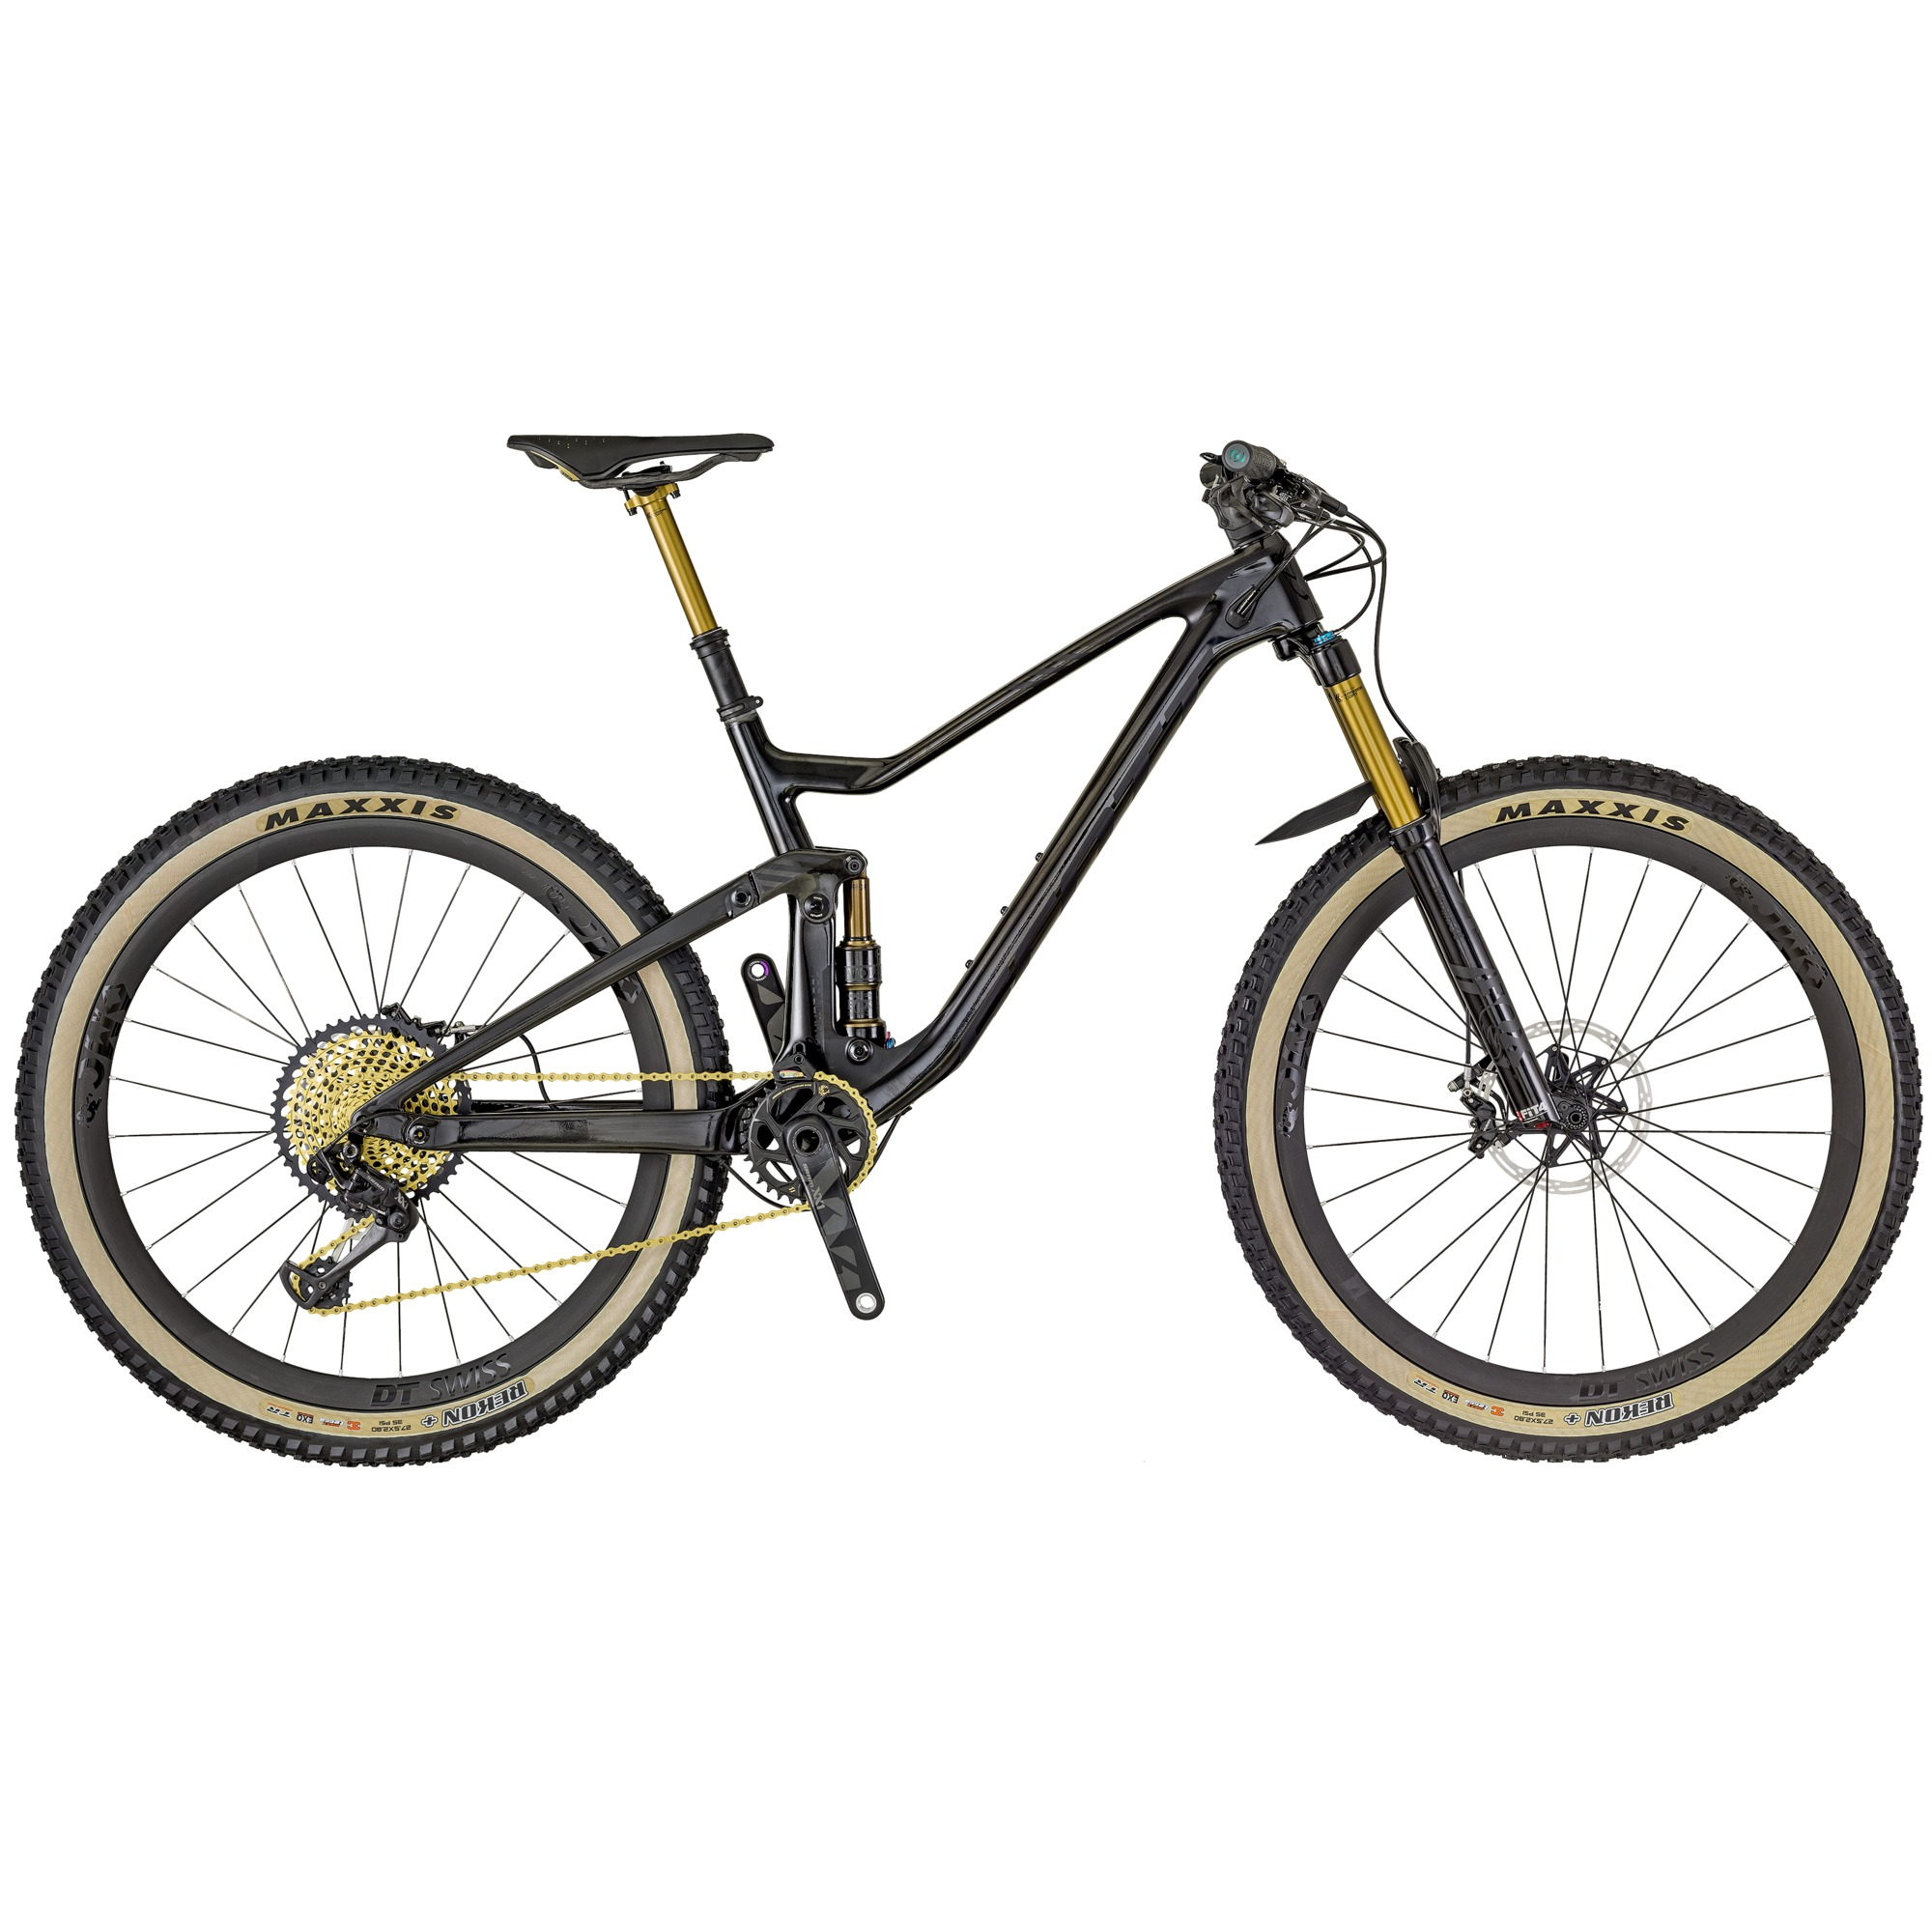 SCOTT Genius 700 Ultimate Bike L - Zweirad Homann